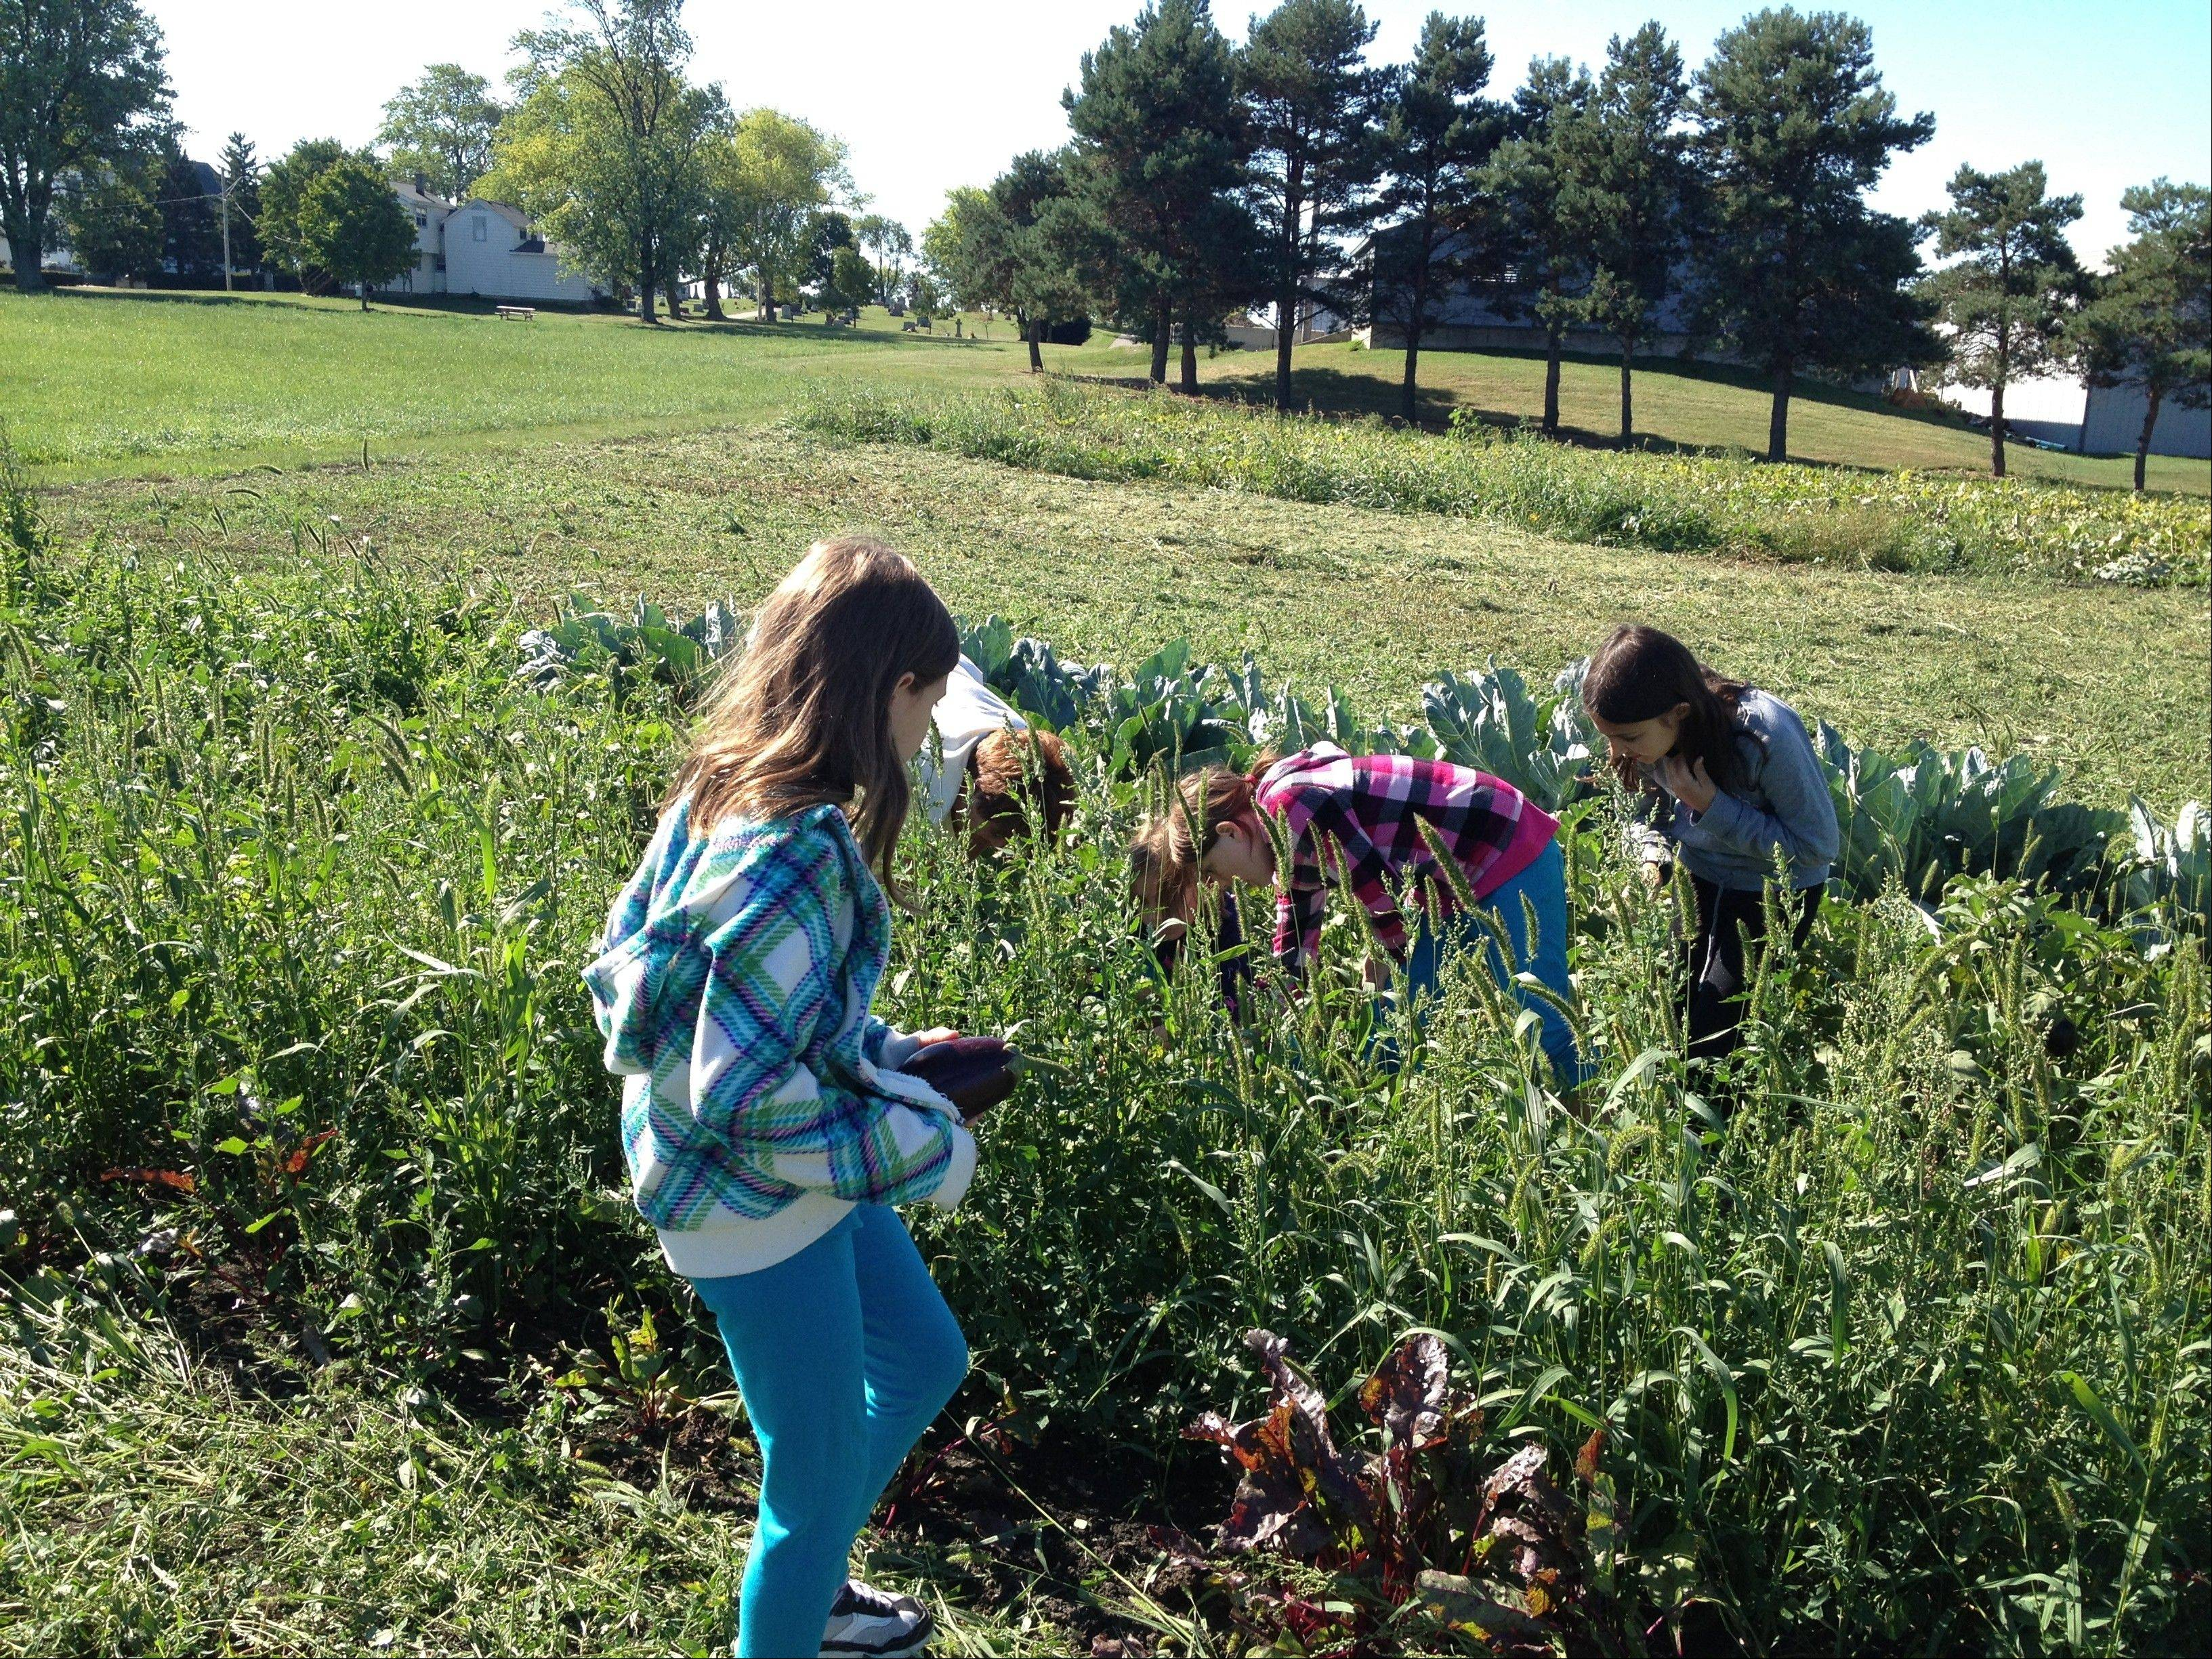 Members from Brownie Troop 41003, based at Fremont School in Mundelein, work in the garden at Fremont Township offices.